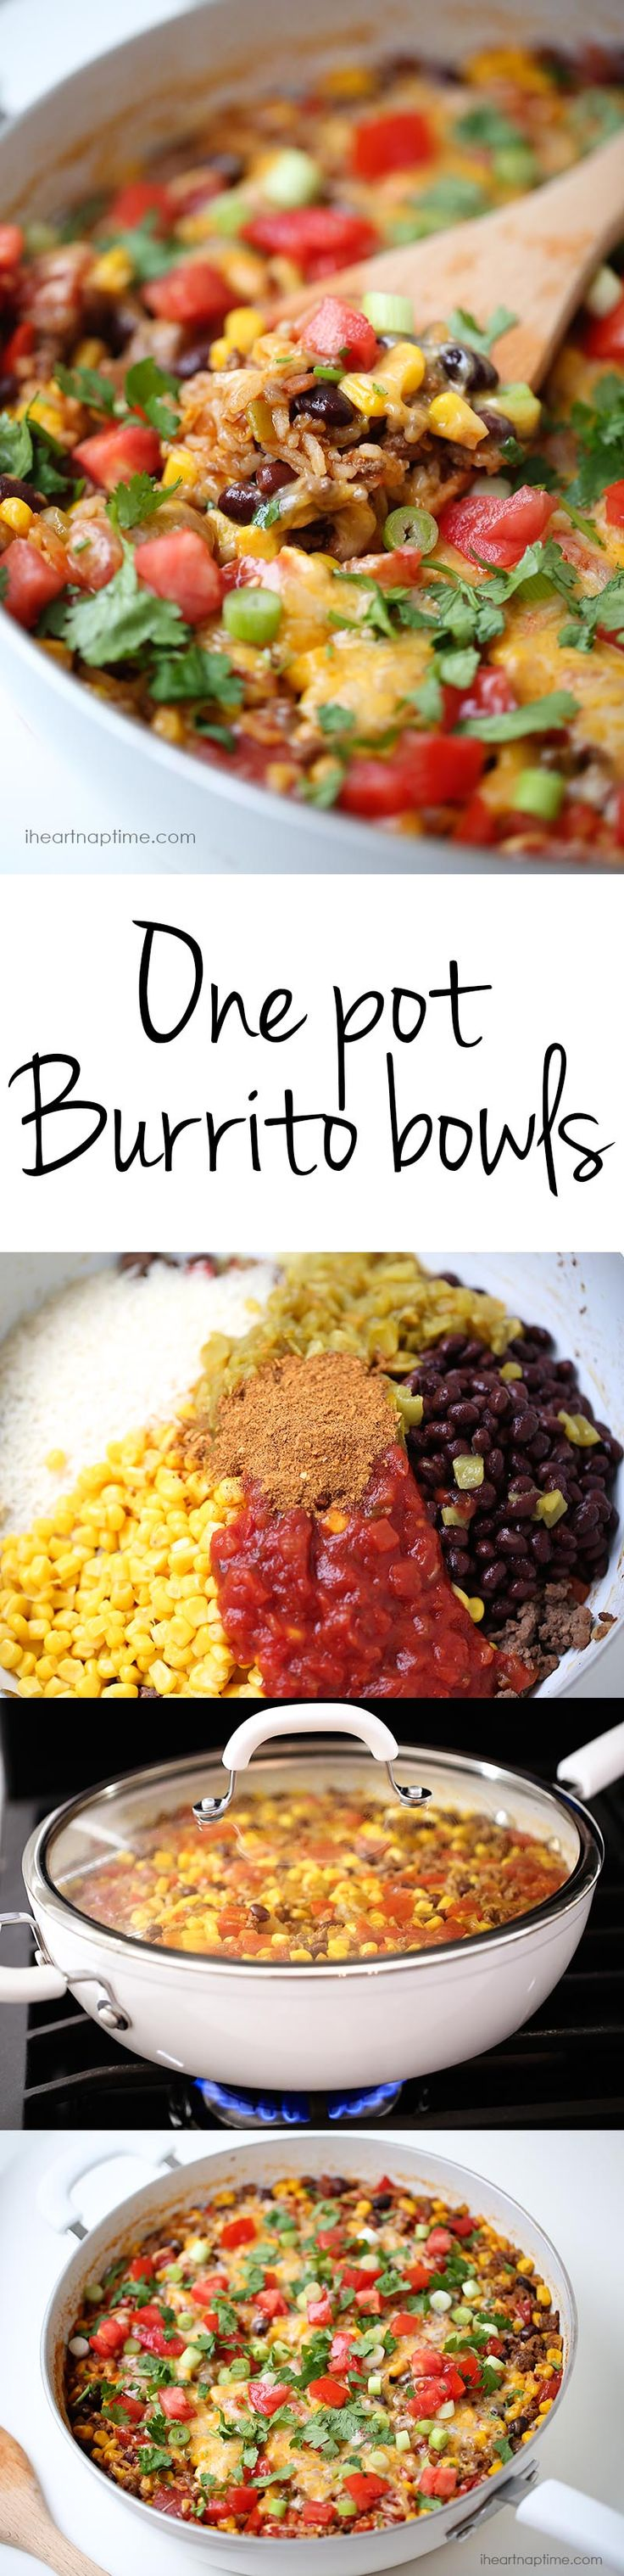 One pot burrito bowls recipe- we love these easy and delicious burrito bowls. They are made in one pot in 30 minutes …making clean up a breeze. Perfect for busy week nights!